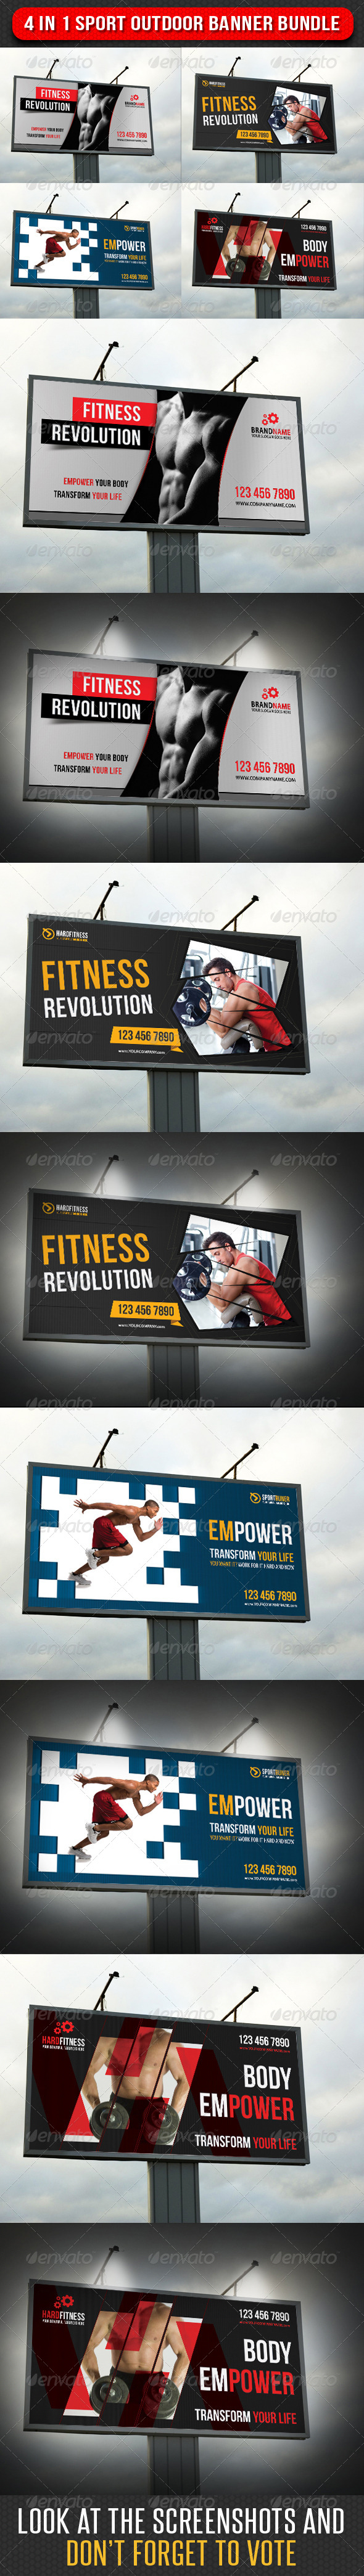 4 in 1 Sport Outdoor Banner Bundle 03 - Signage Print Templates